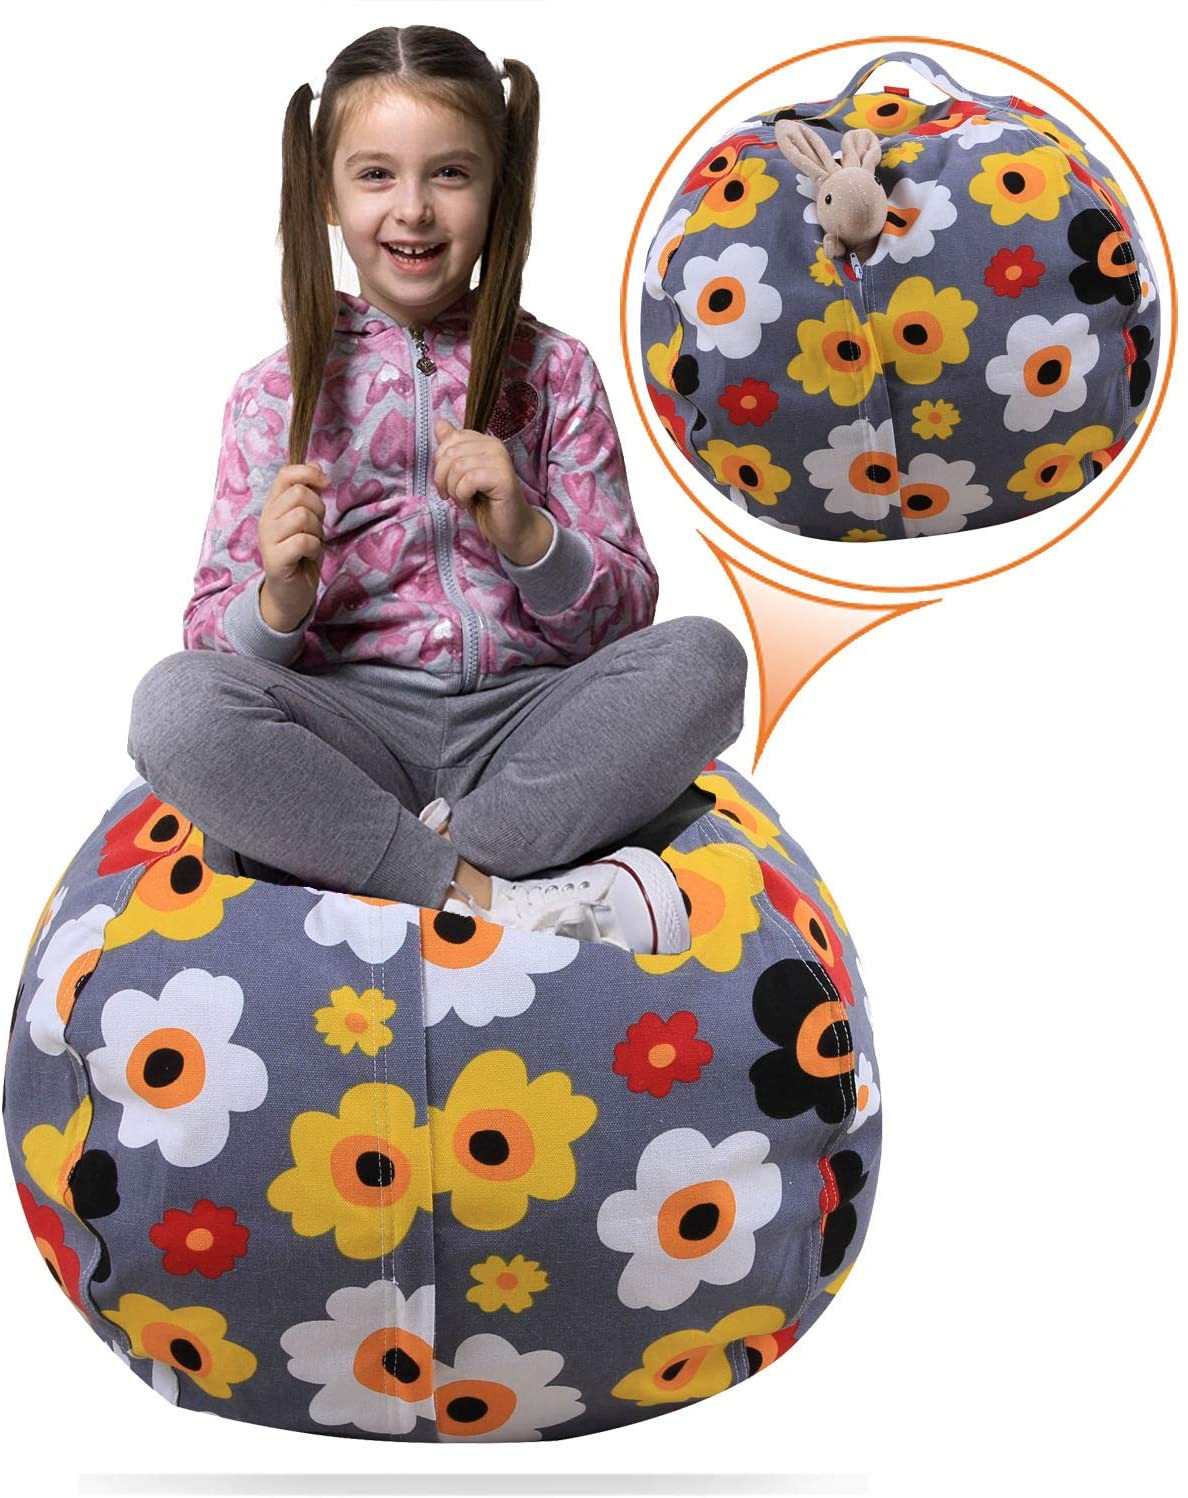 Injoy 24'' Stuffed Animals Bean Bag Chair Cover -100% Cotton Canvas Kids Toy Storage Zipper Bags Organizer Comfy Pouf for Boys Girls Toddlar, Grey with Flowers